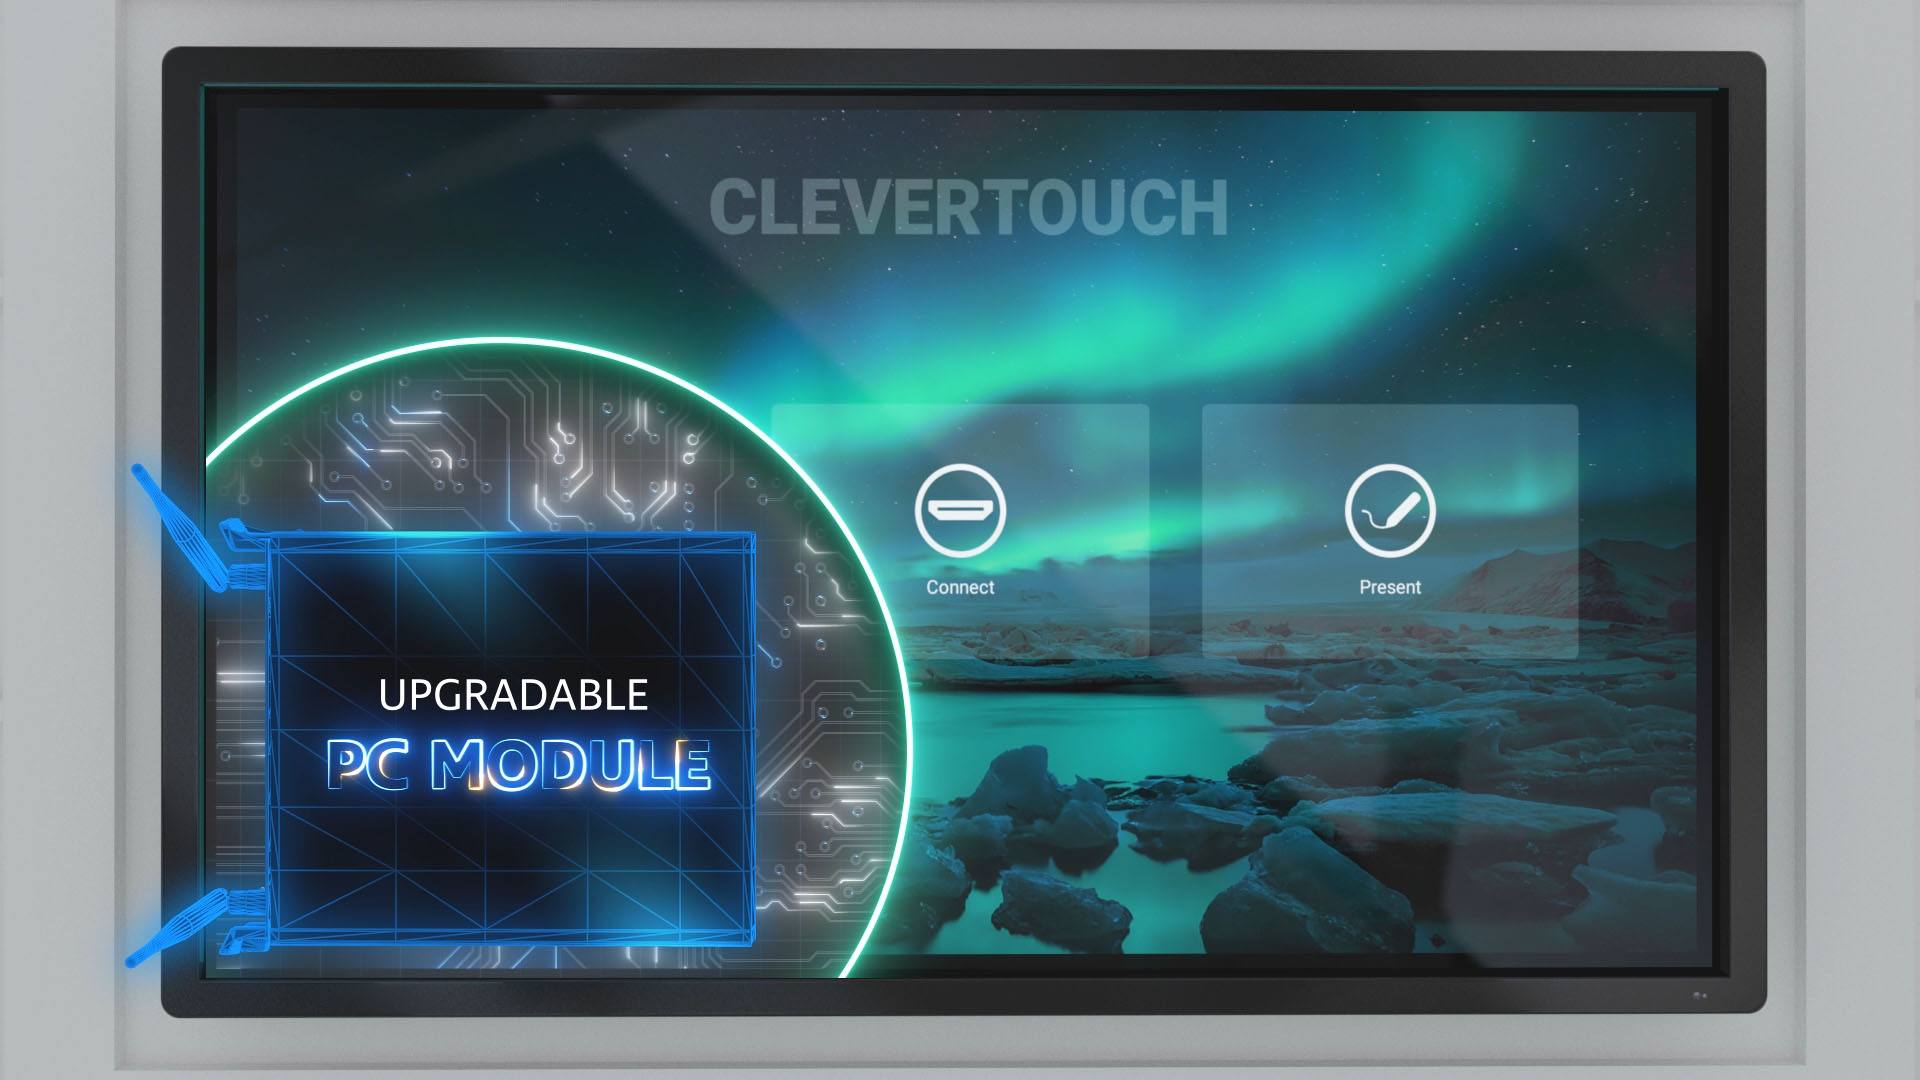 Clevertouch_screem shots_#_0002_Layer 4